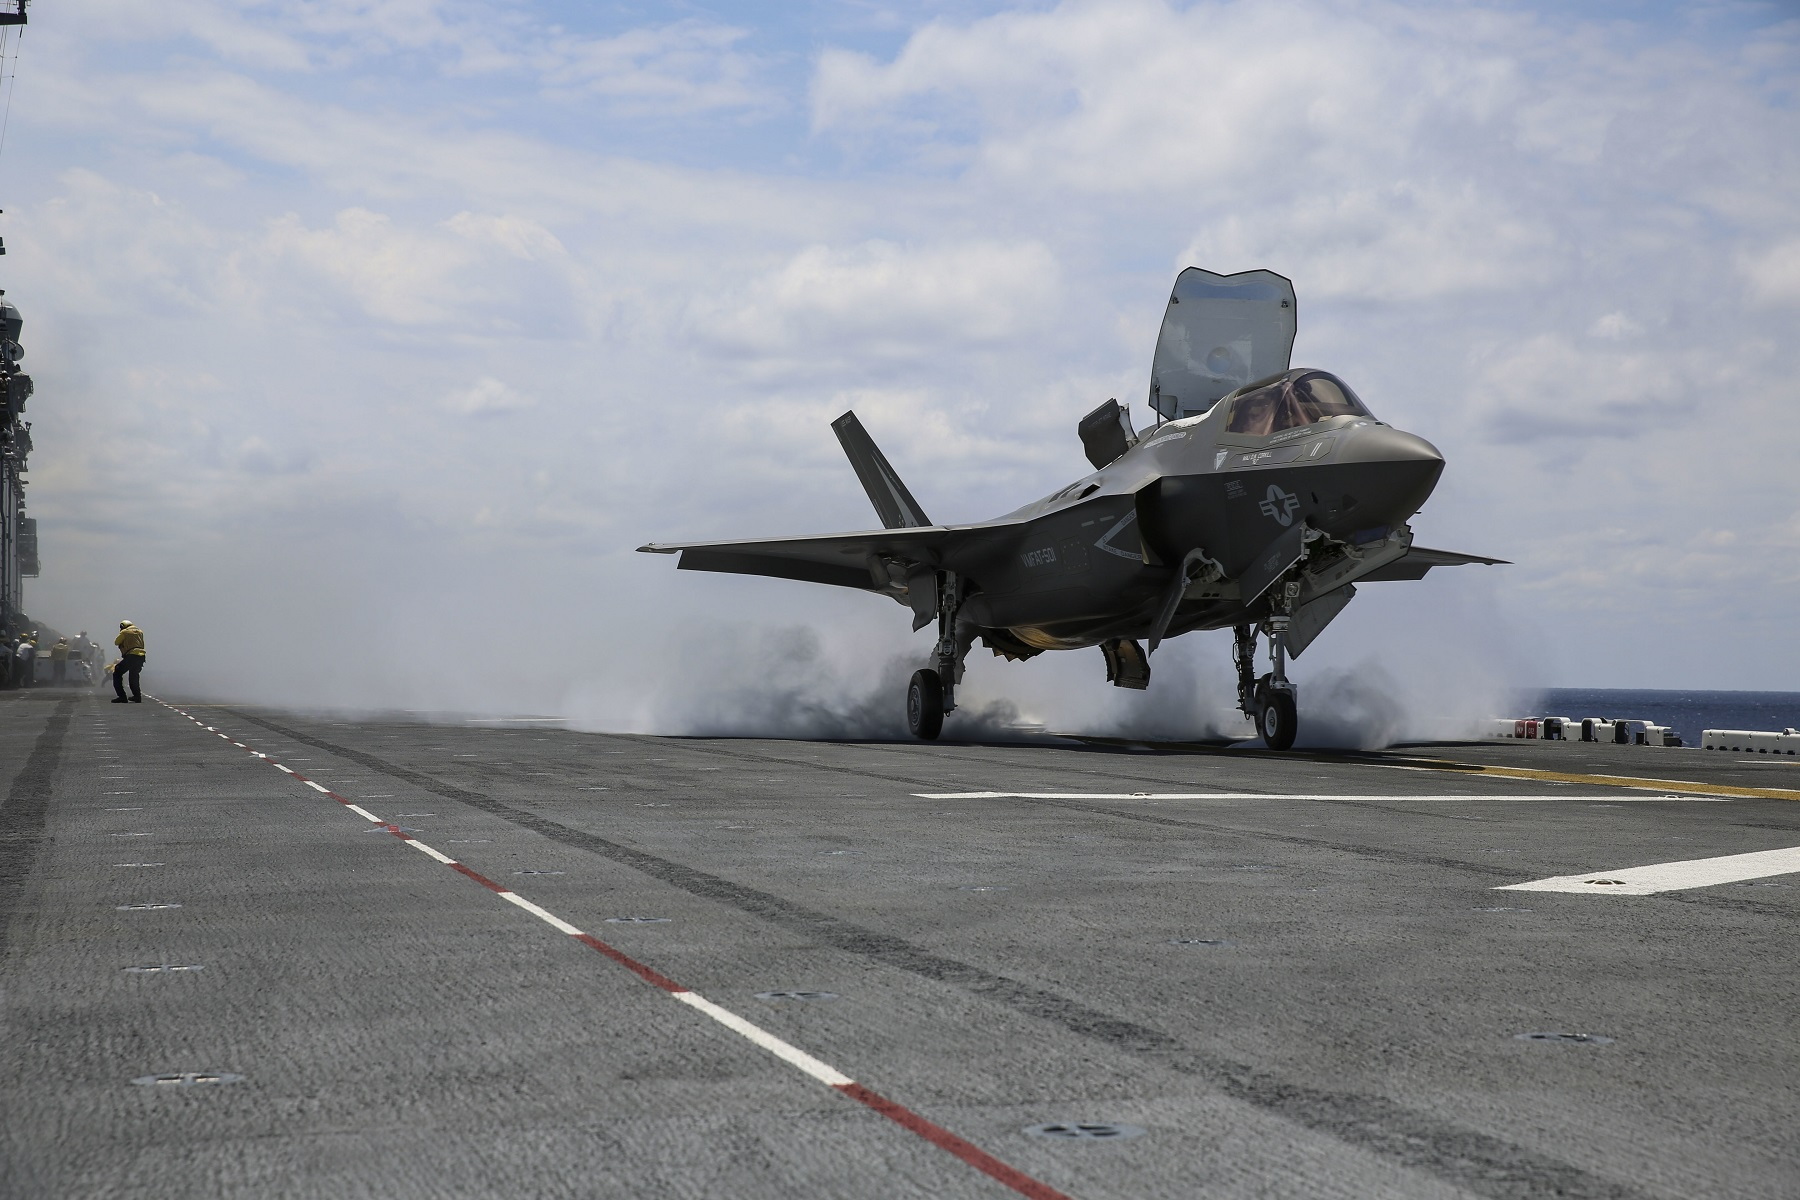 Japan, South Korea may refit naval ships for F-35 fighters